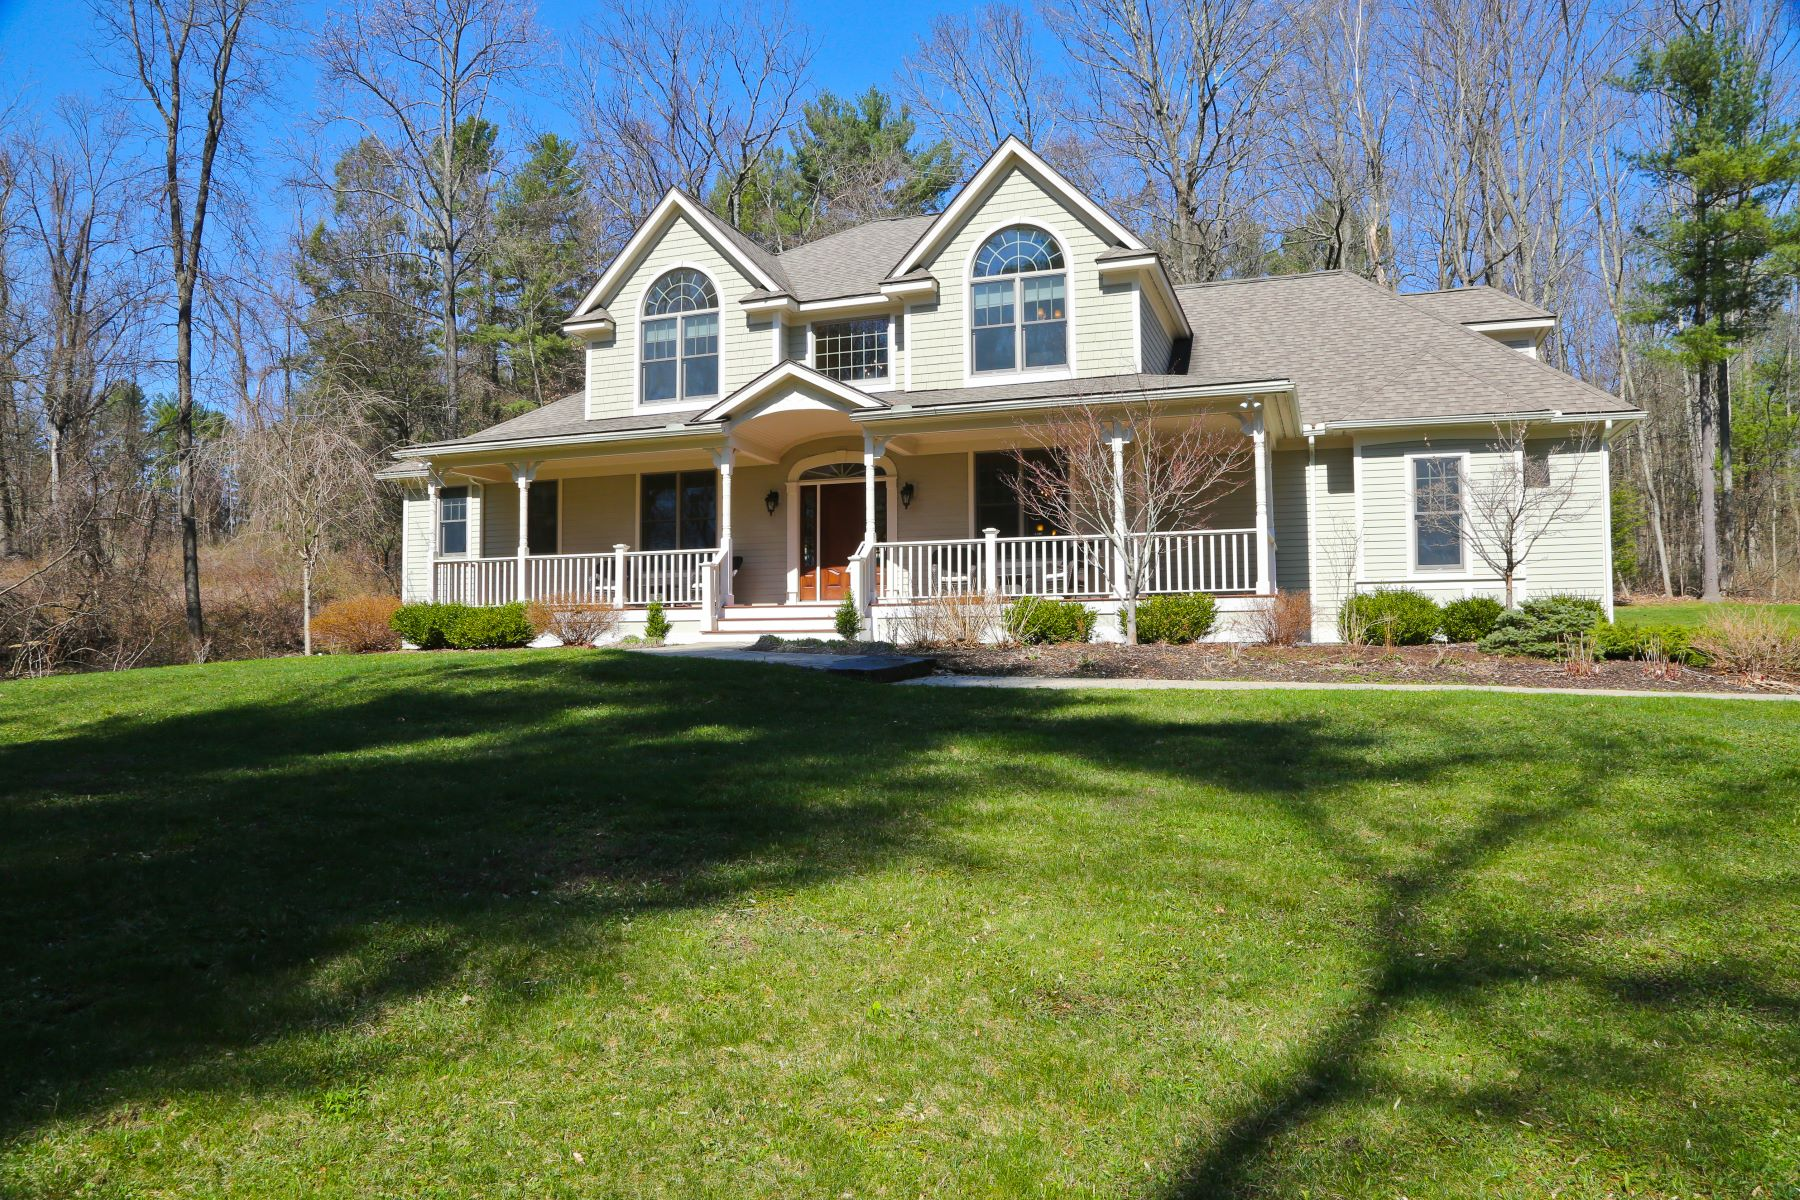 Single Family Home for Active at Exquisite Turn Key Home on Great Barrington's ''The Hill'' 6 & 8 Berkshire Heights Rd Great Barrington, Massachusetts 01230 United States